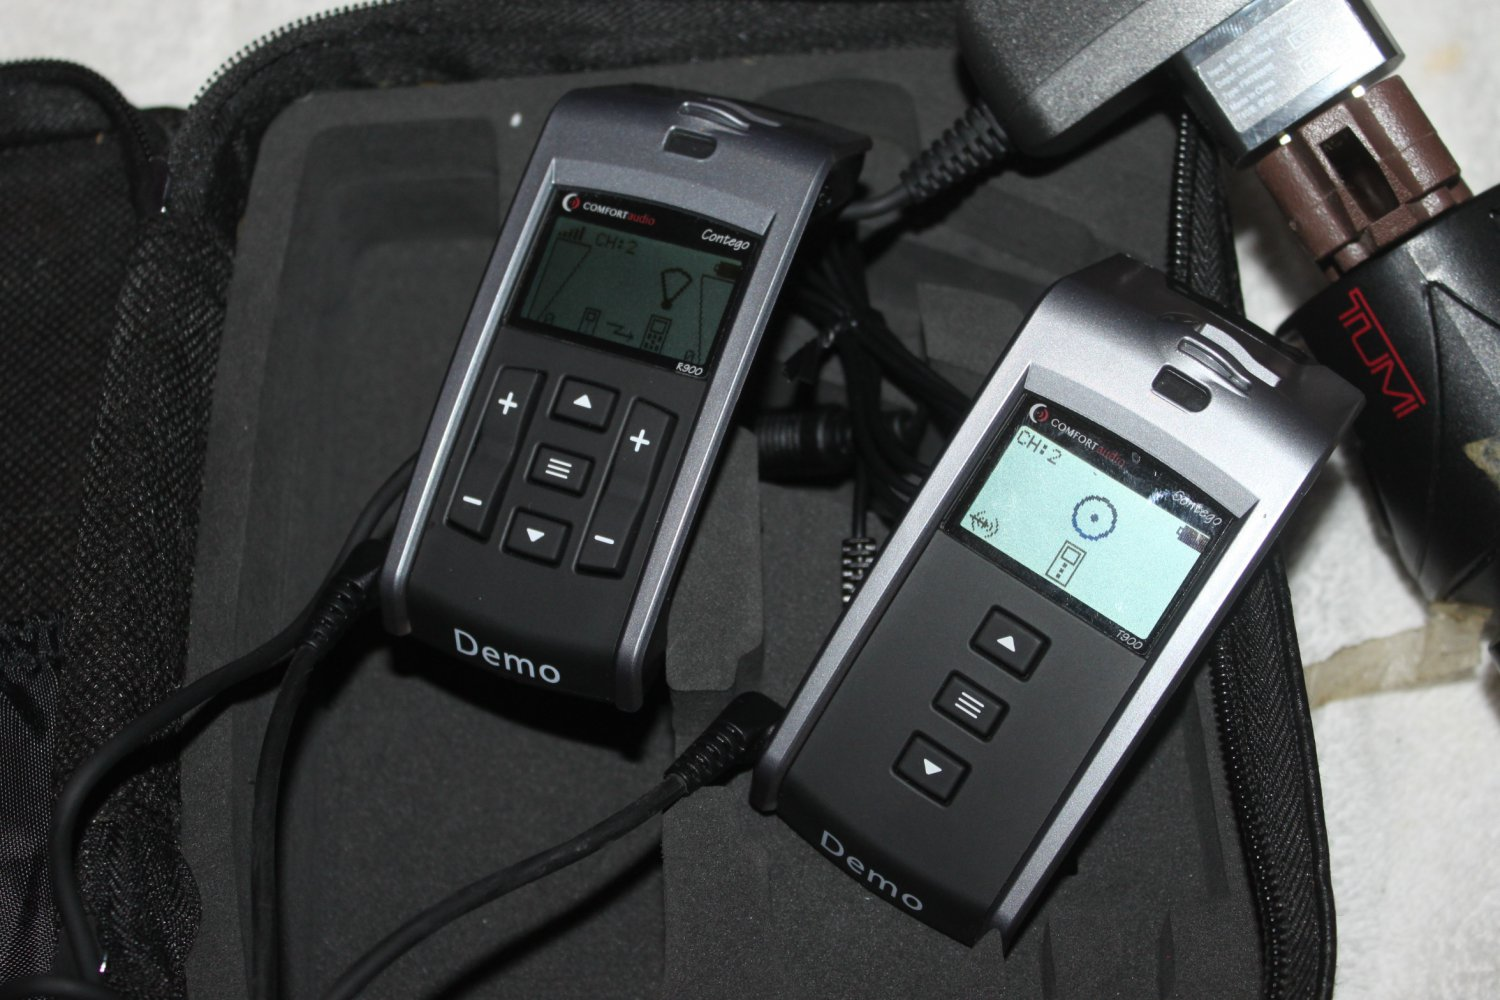 COMFORT CONTEGO R900 . T900 FM HD COMMUNICATION SYSTEM DEMO UNIT (v) q4